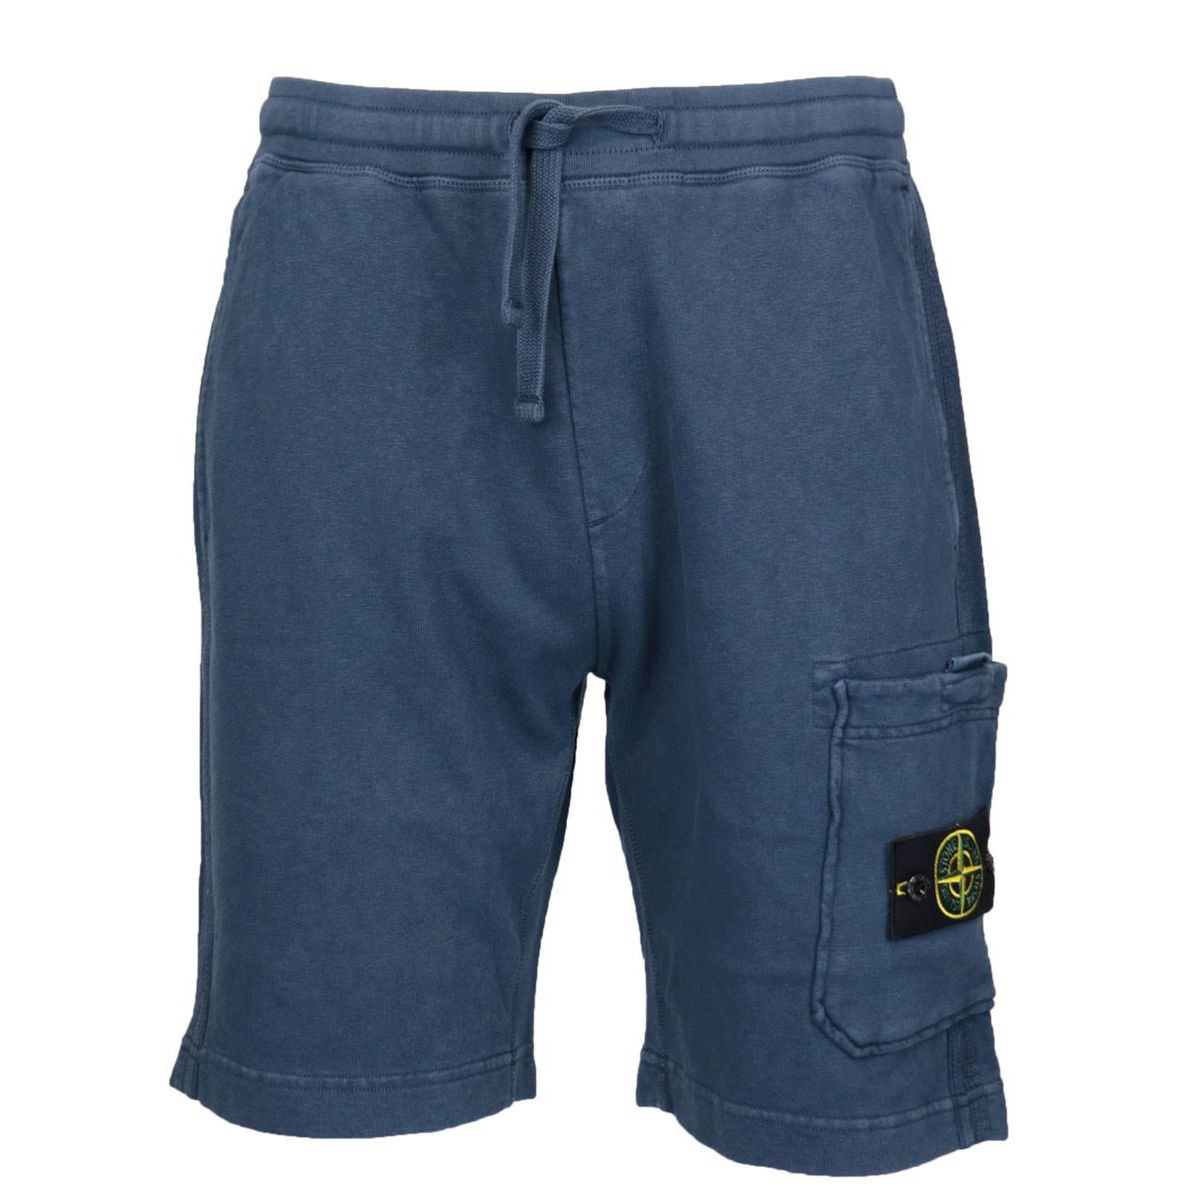 Regular-fit bermuda shorts in aged effect cotton fleece Navy Stone Island